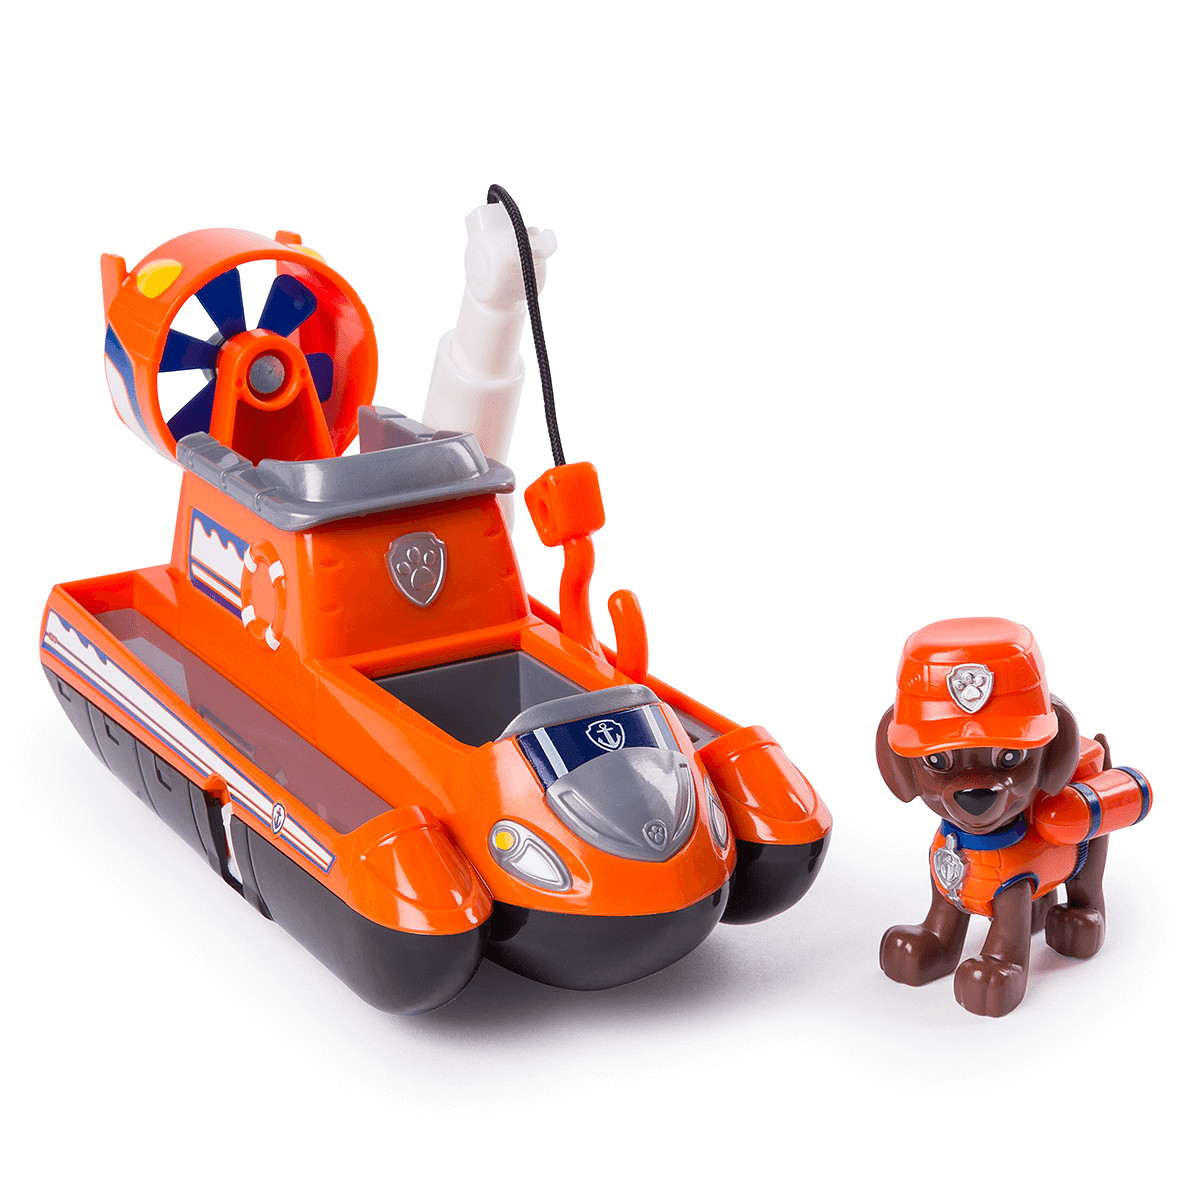 Paw Patrol Ultimate Rescue Vehicle With Pup - Zuma from Early Learning Center